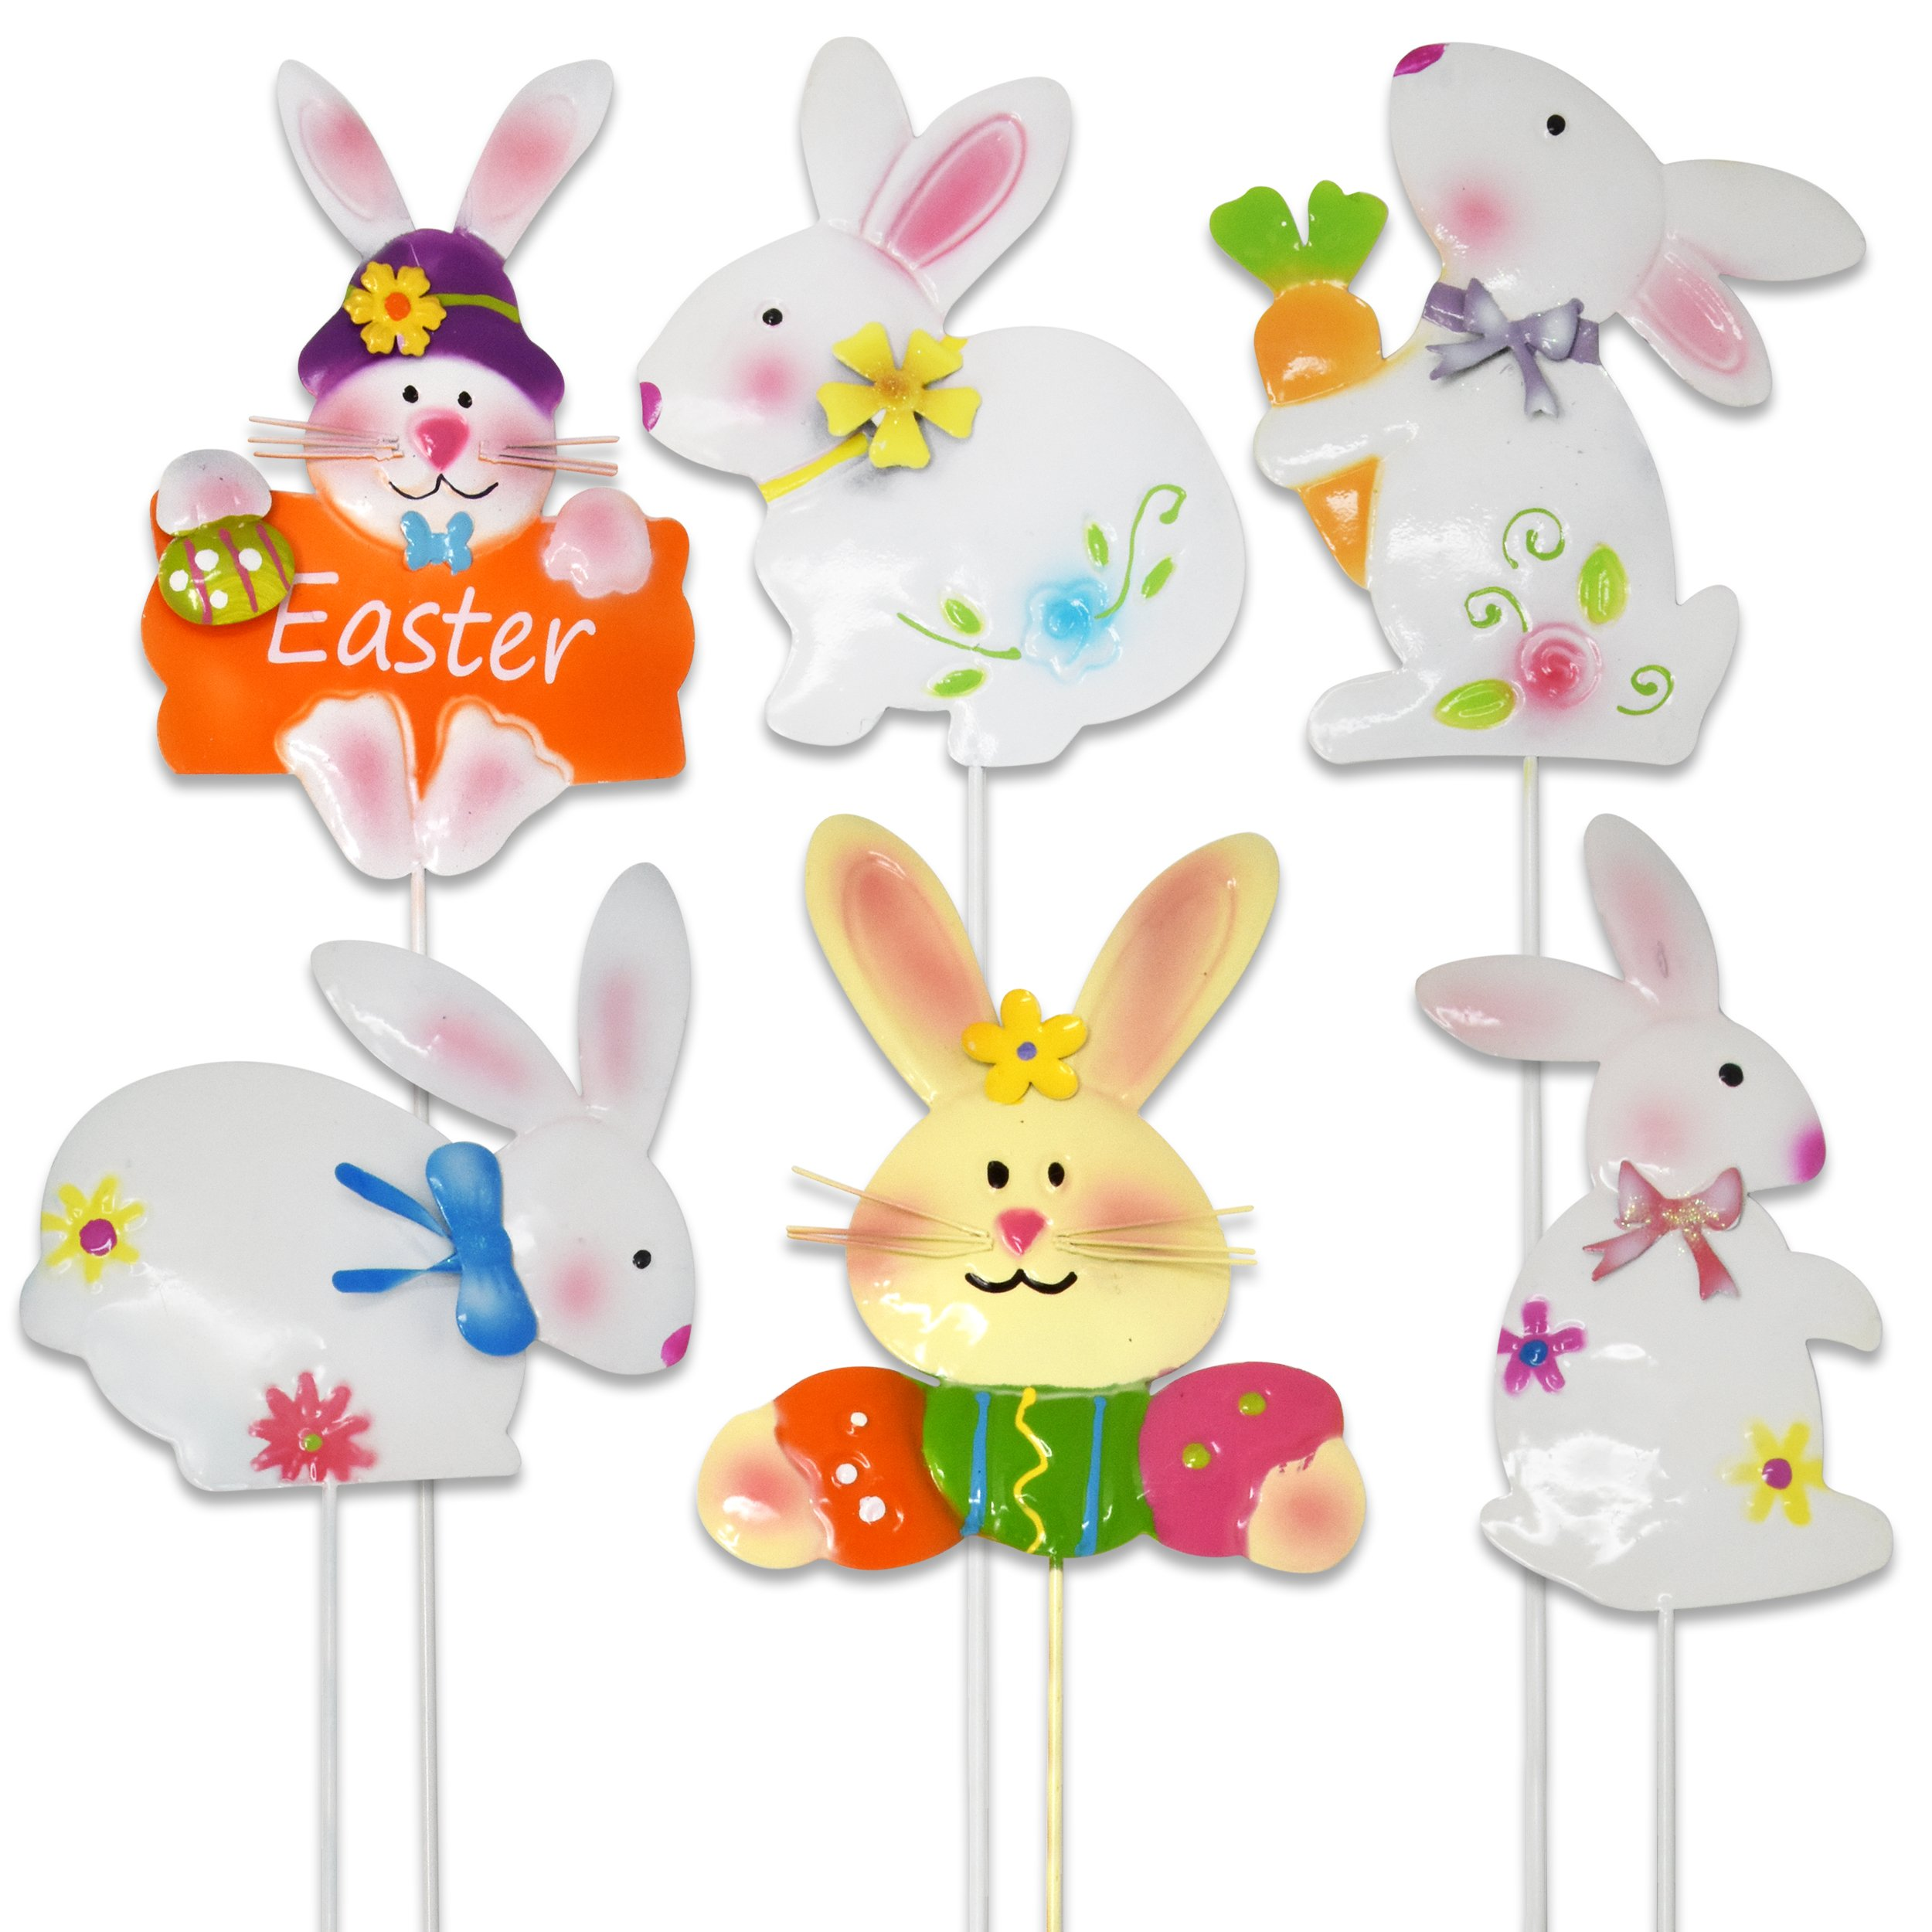 Gift Boutique 6 Easter Yard Stakes Bunny Decorations Weatherproof Supplies Bunny Metal Garden Spring Party Lawn Outdoor Signs